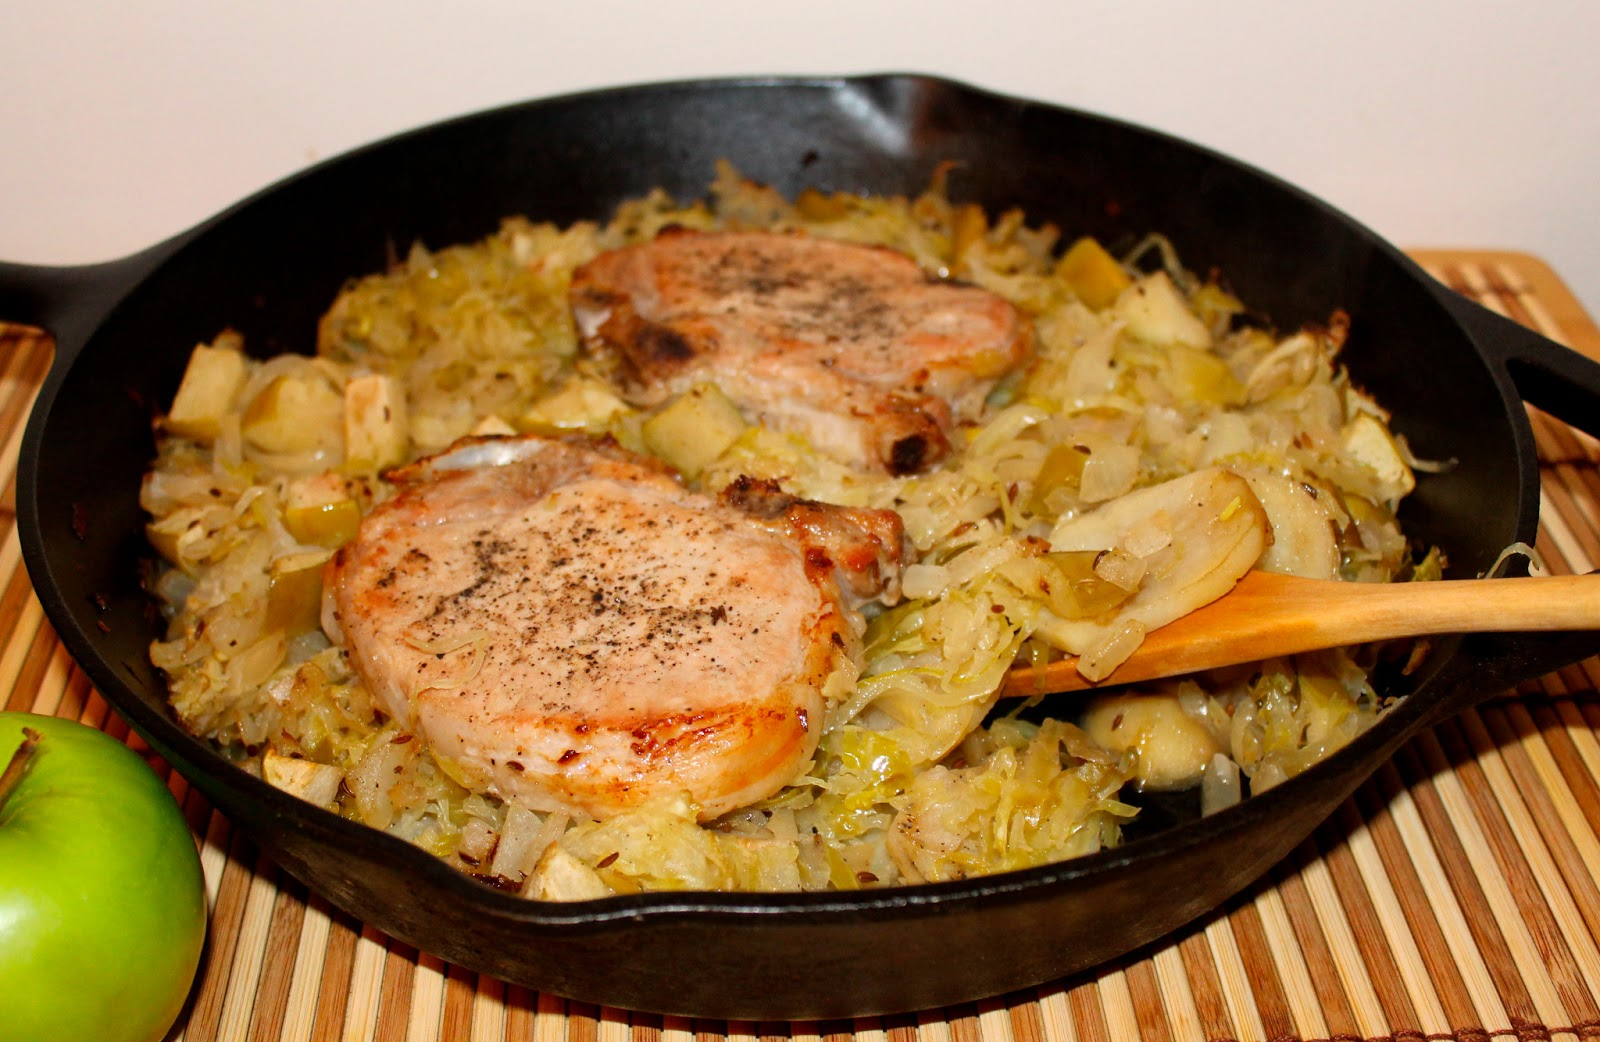 Savory Moments: Pork chop and sauerkraut casserole